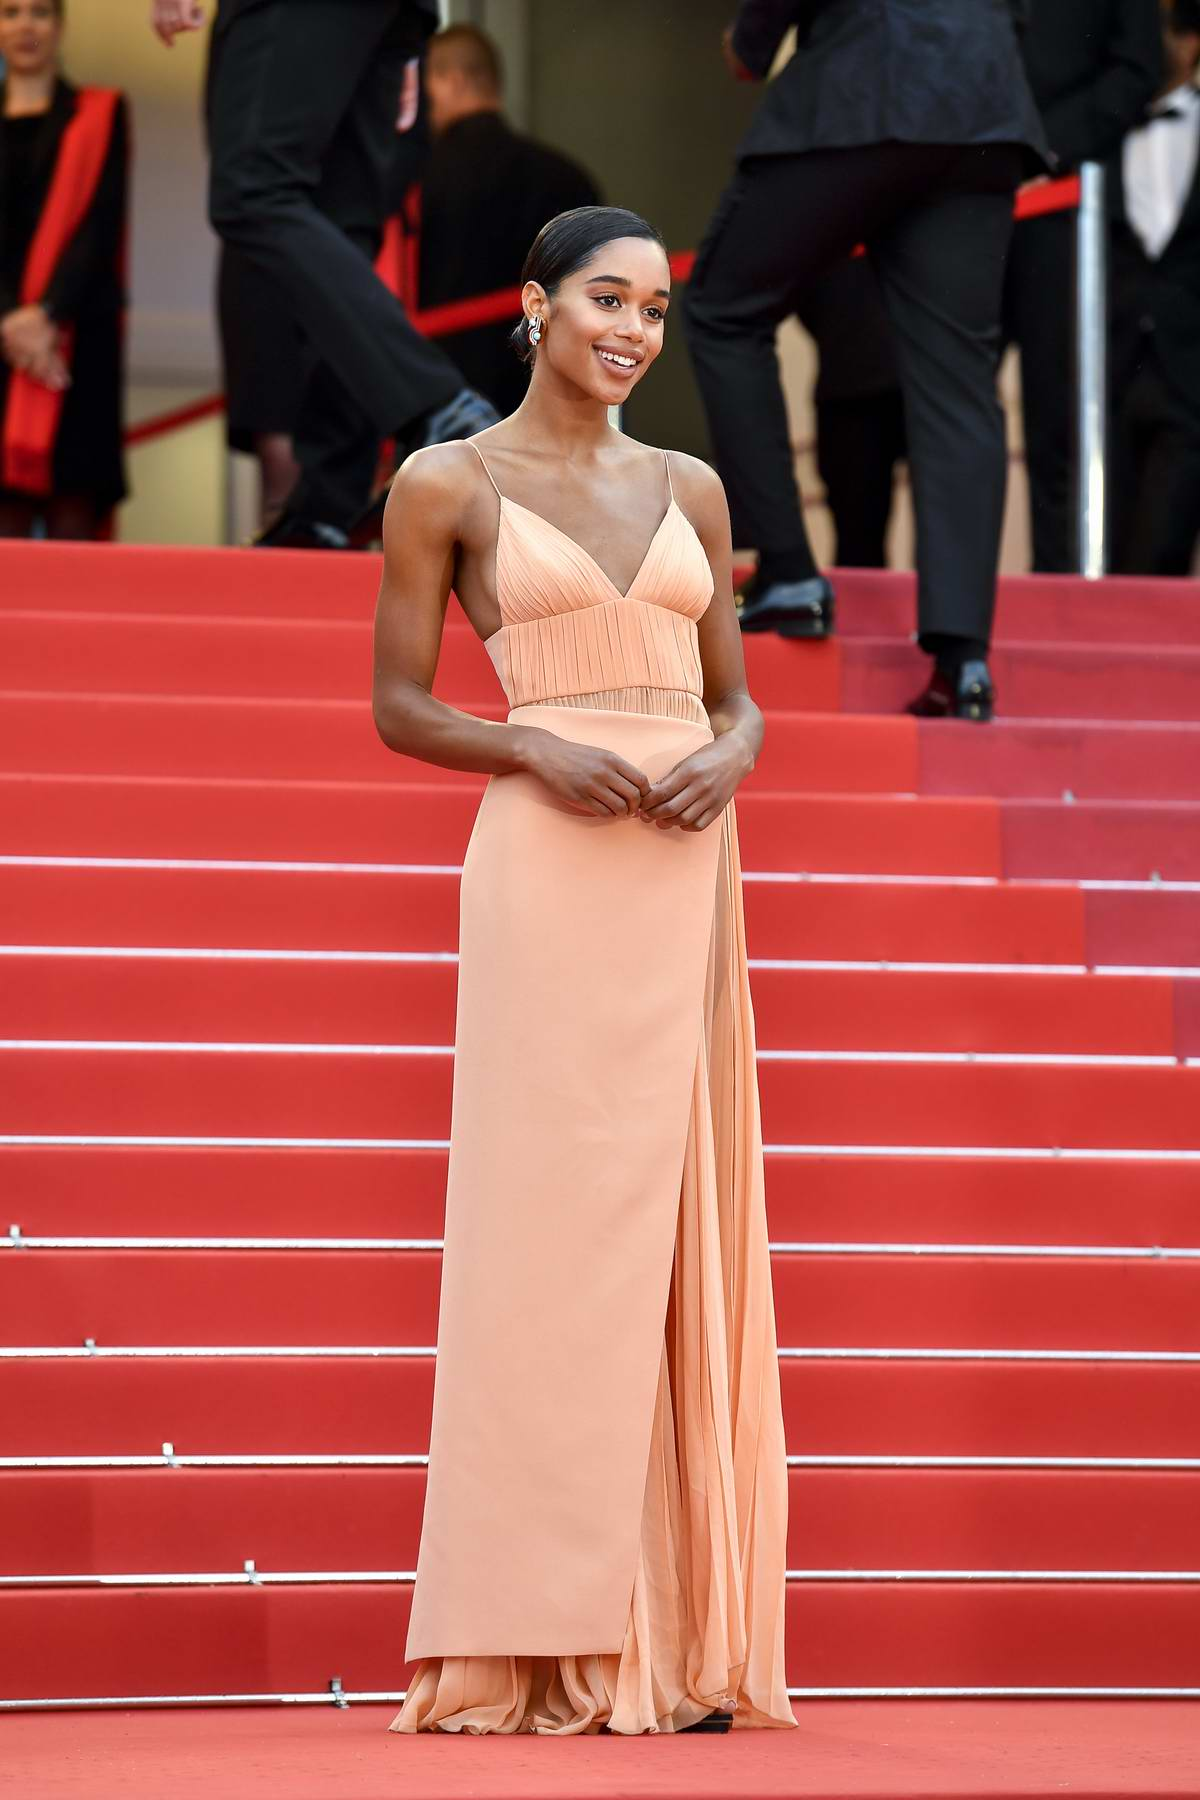 Laura Harrier attends the 'BlacKkKlansman' premiere during 71st Cannes Film Festival in Cannes, France